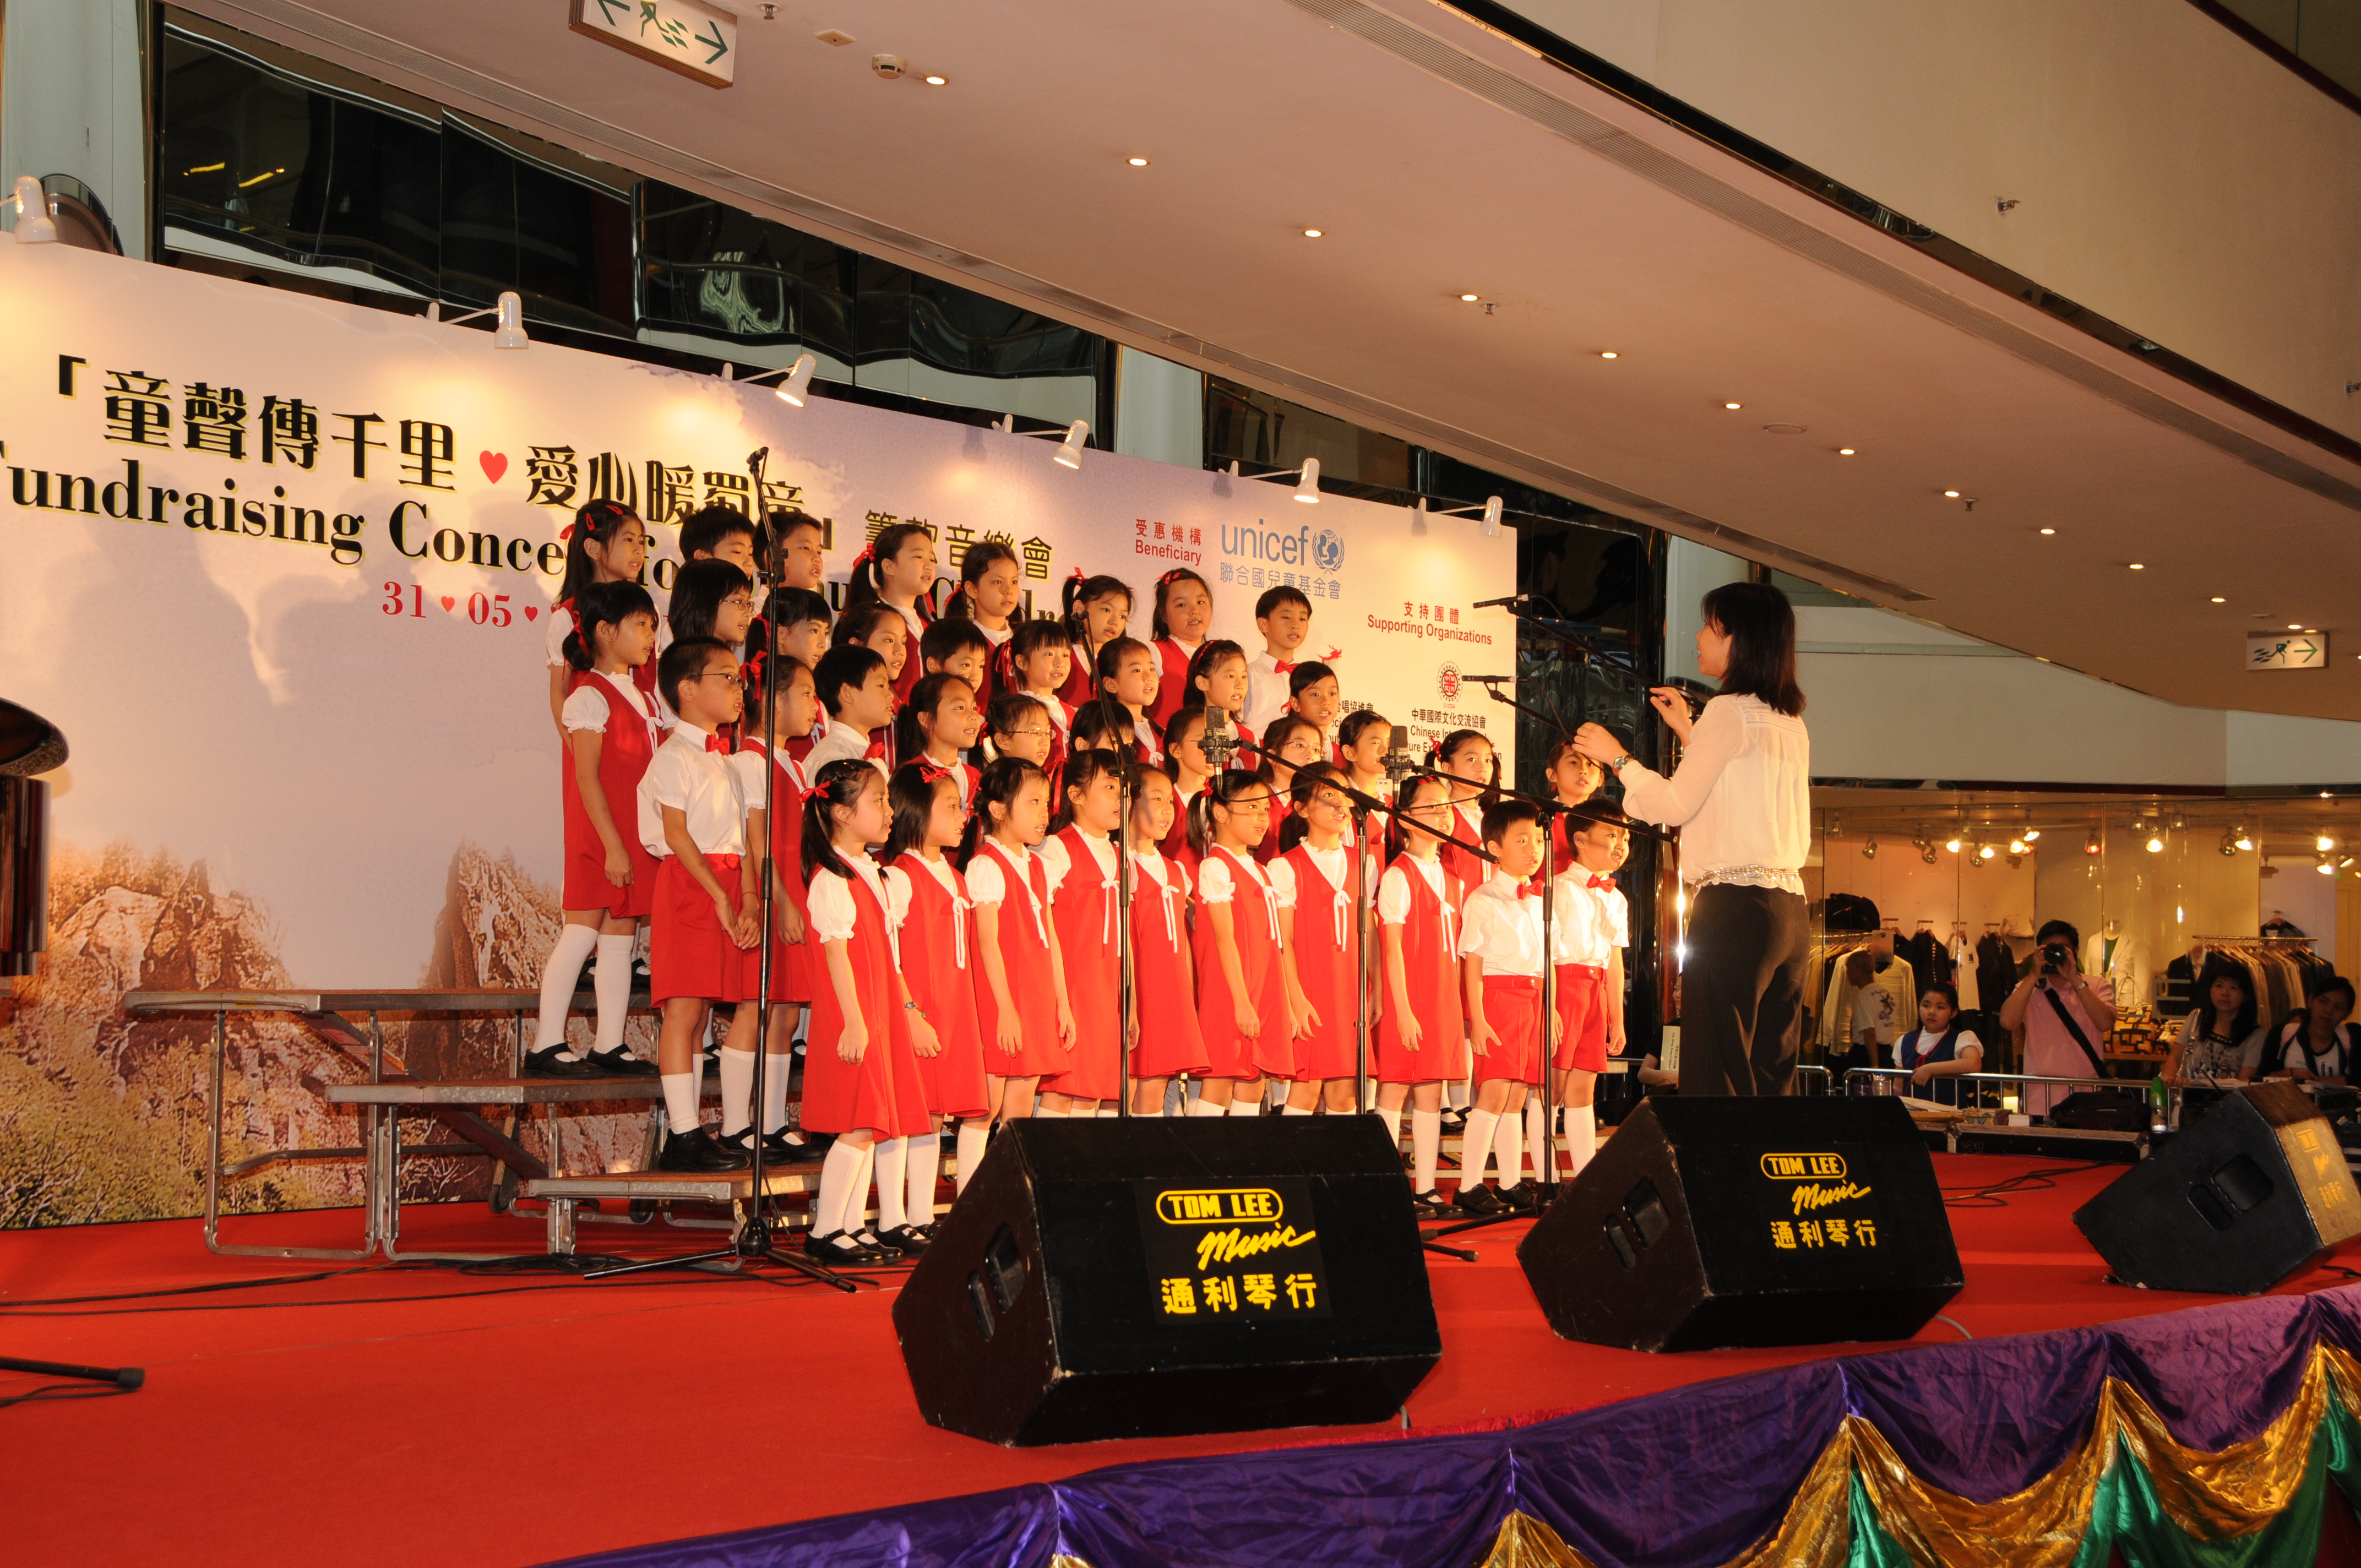 https://hkcchoir.org.hk/sites/default/files/charity_2008_sichuan3.jpg